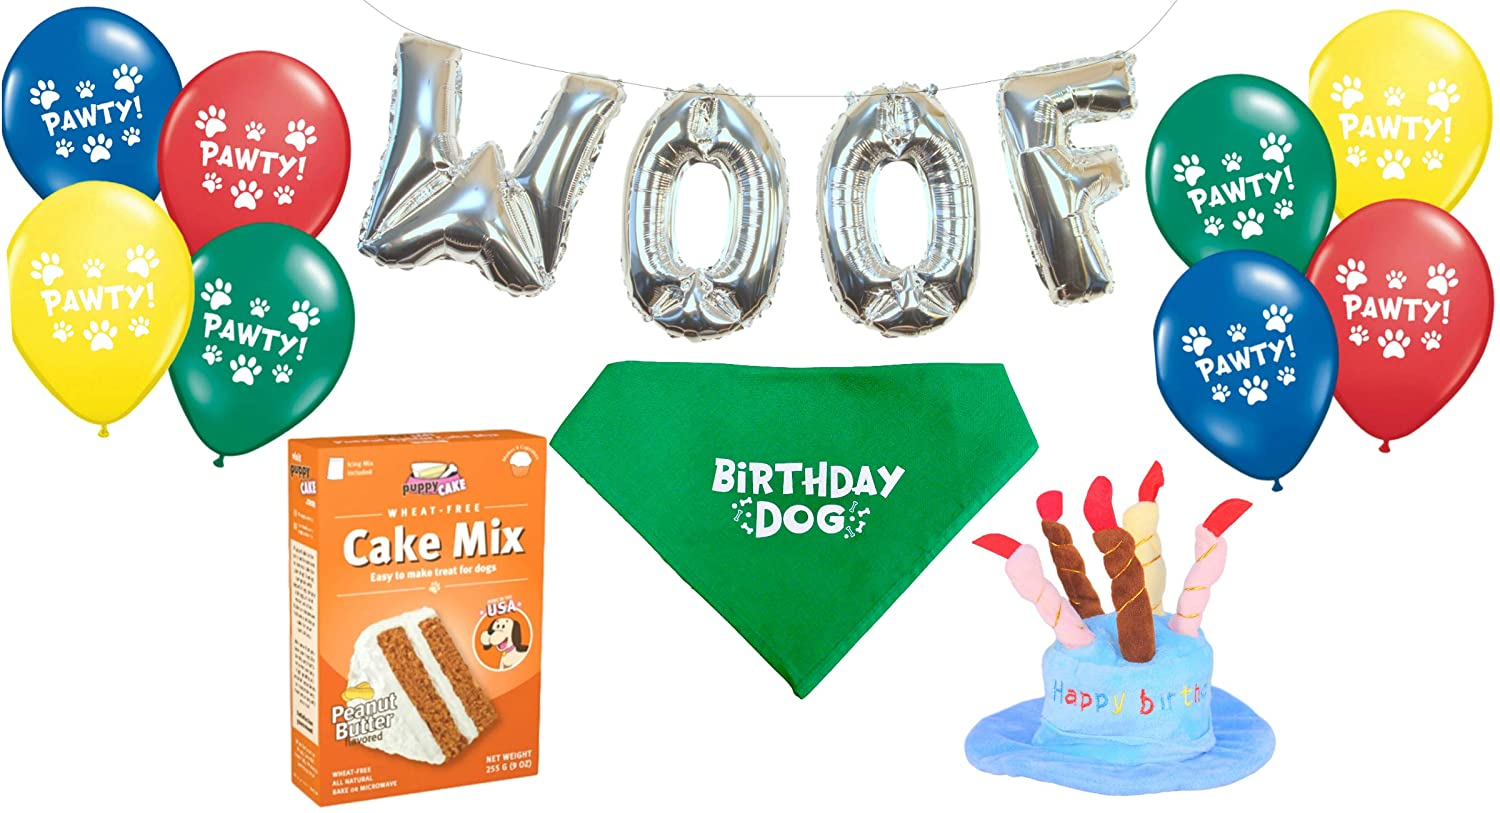 Amazon Dog Birthday Party Decorations Kit By Blast In A Box Blue Hat Puppy Cake Mix Cotton Bandana WOOF And Pawty Balloons